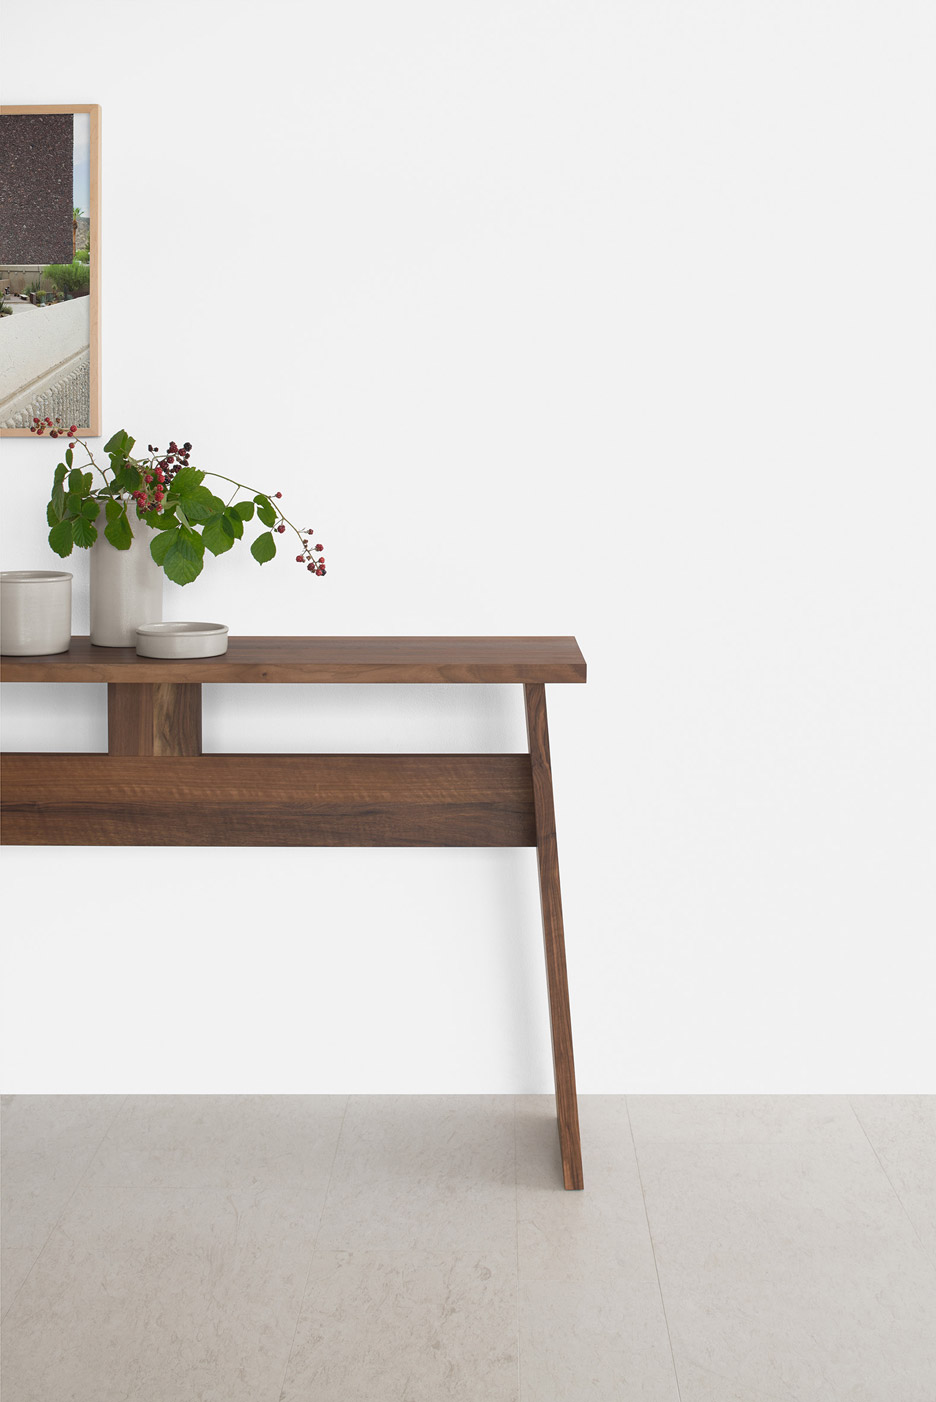 E15-Furniture-David-Chipperfield-Salina_dezeen_936_9